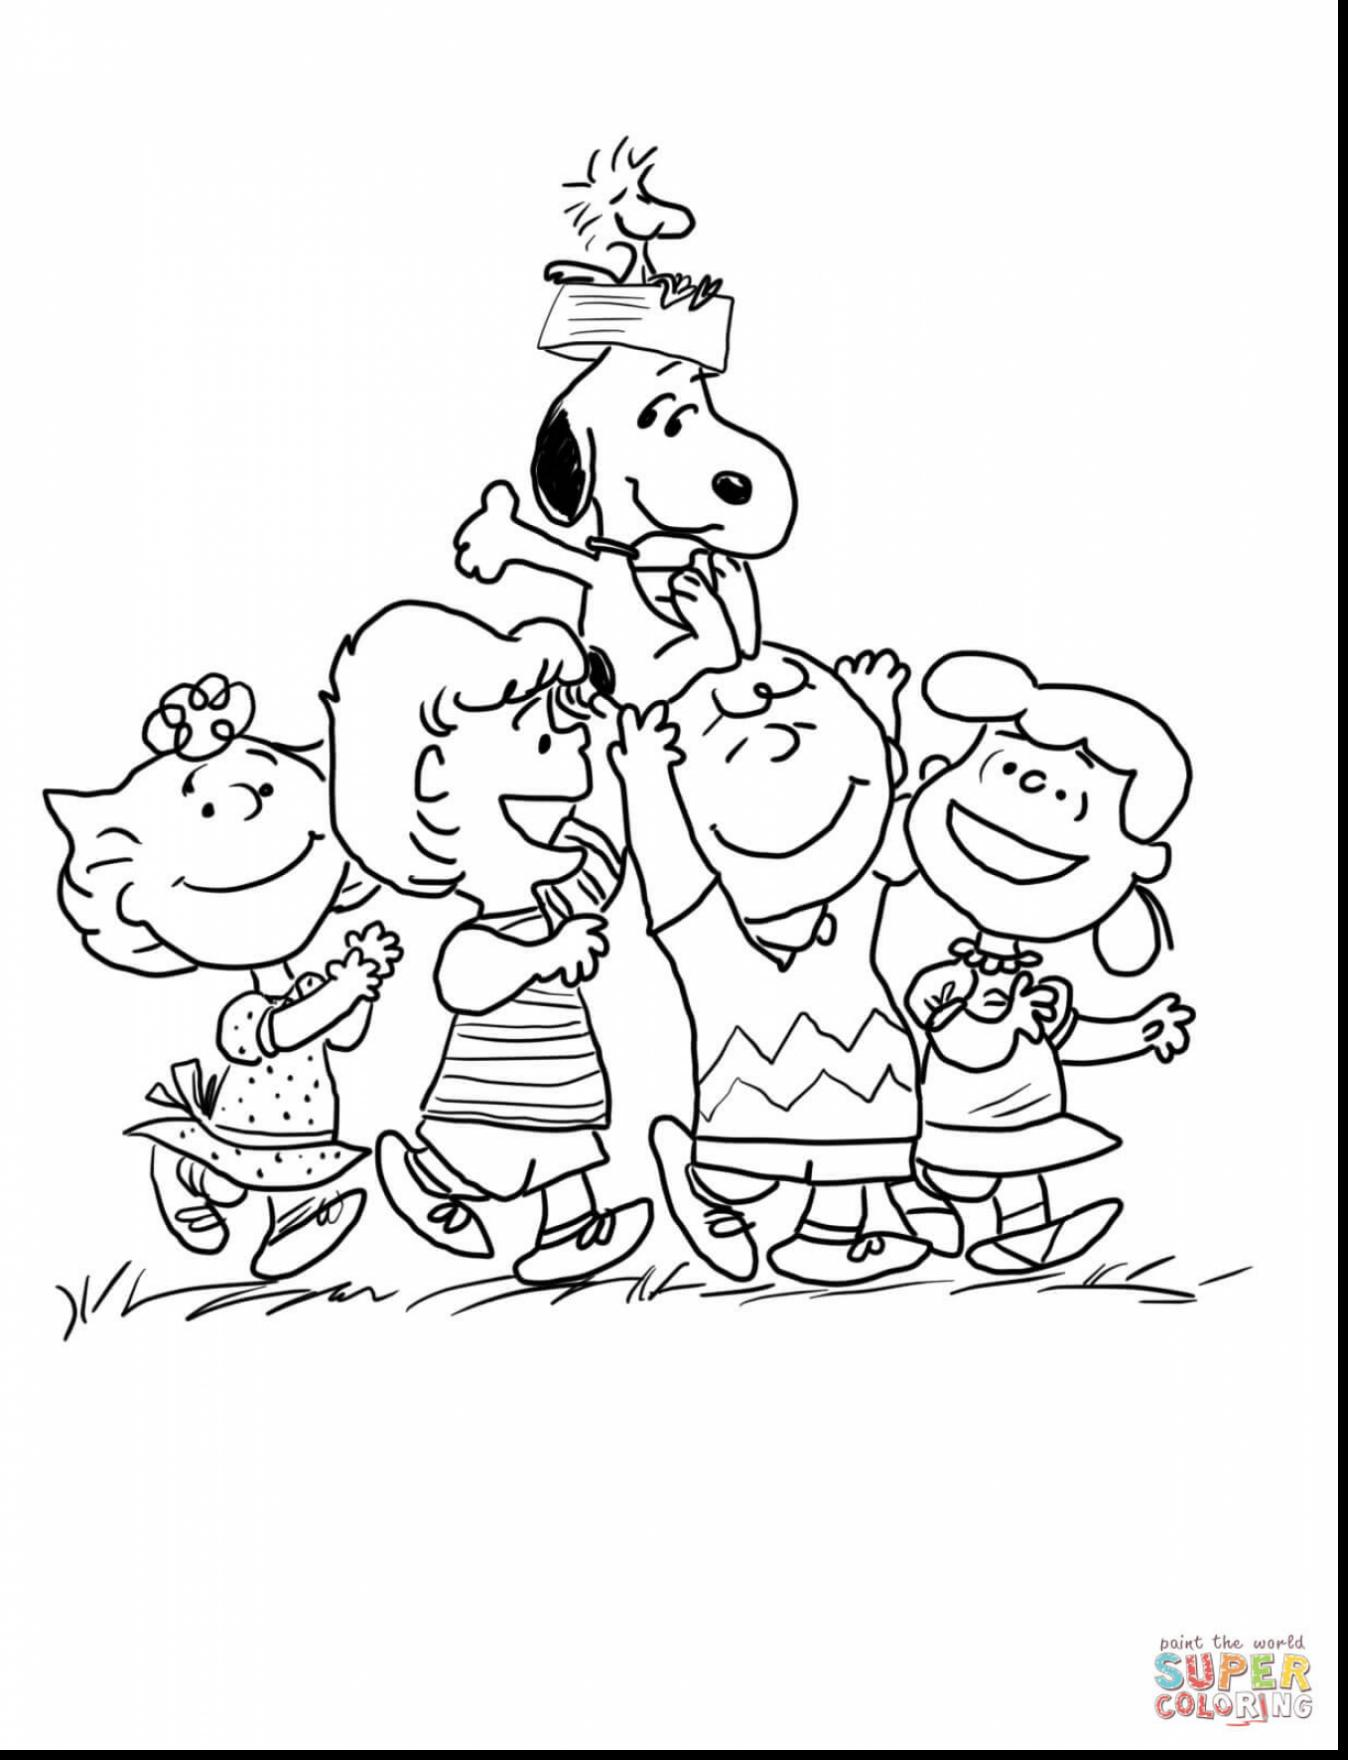 1348x1760 Surprising Charlie Brown Peanuts Gang Coloring Page With Christmas